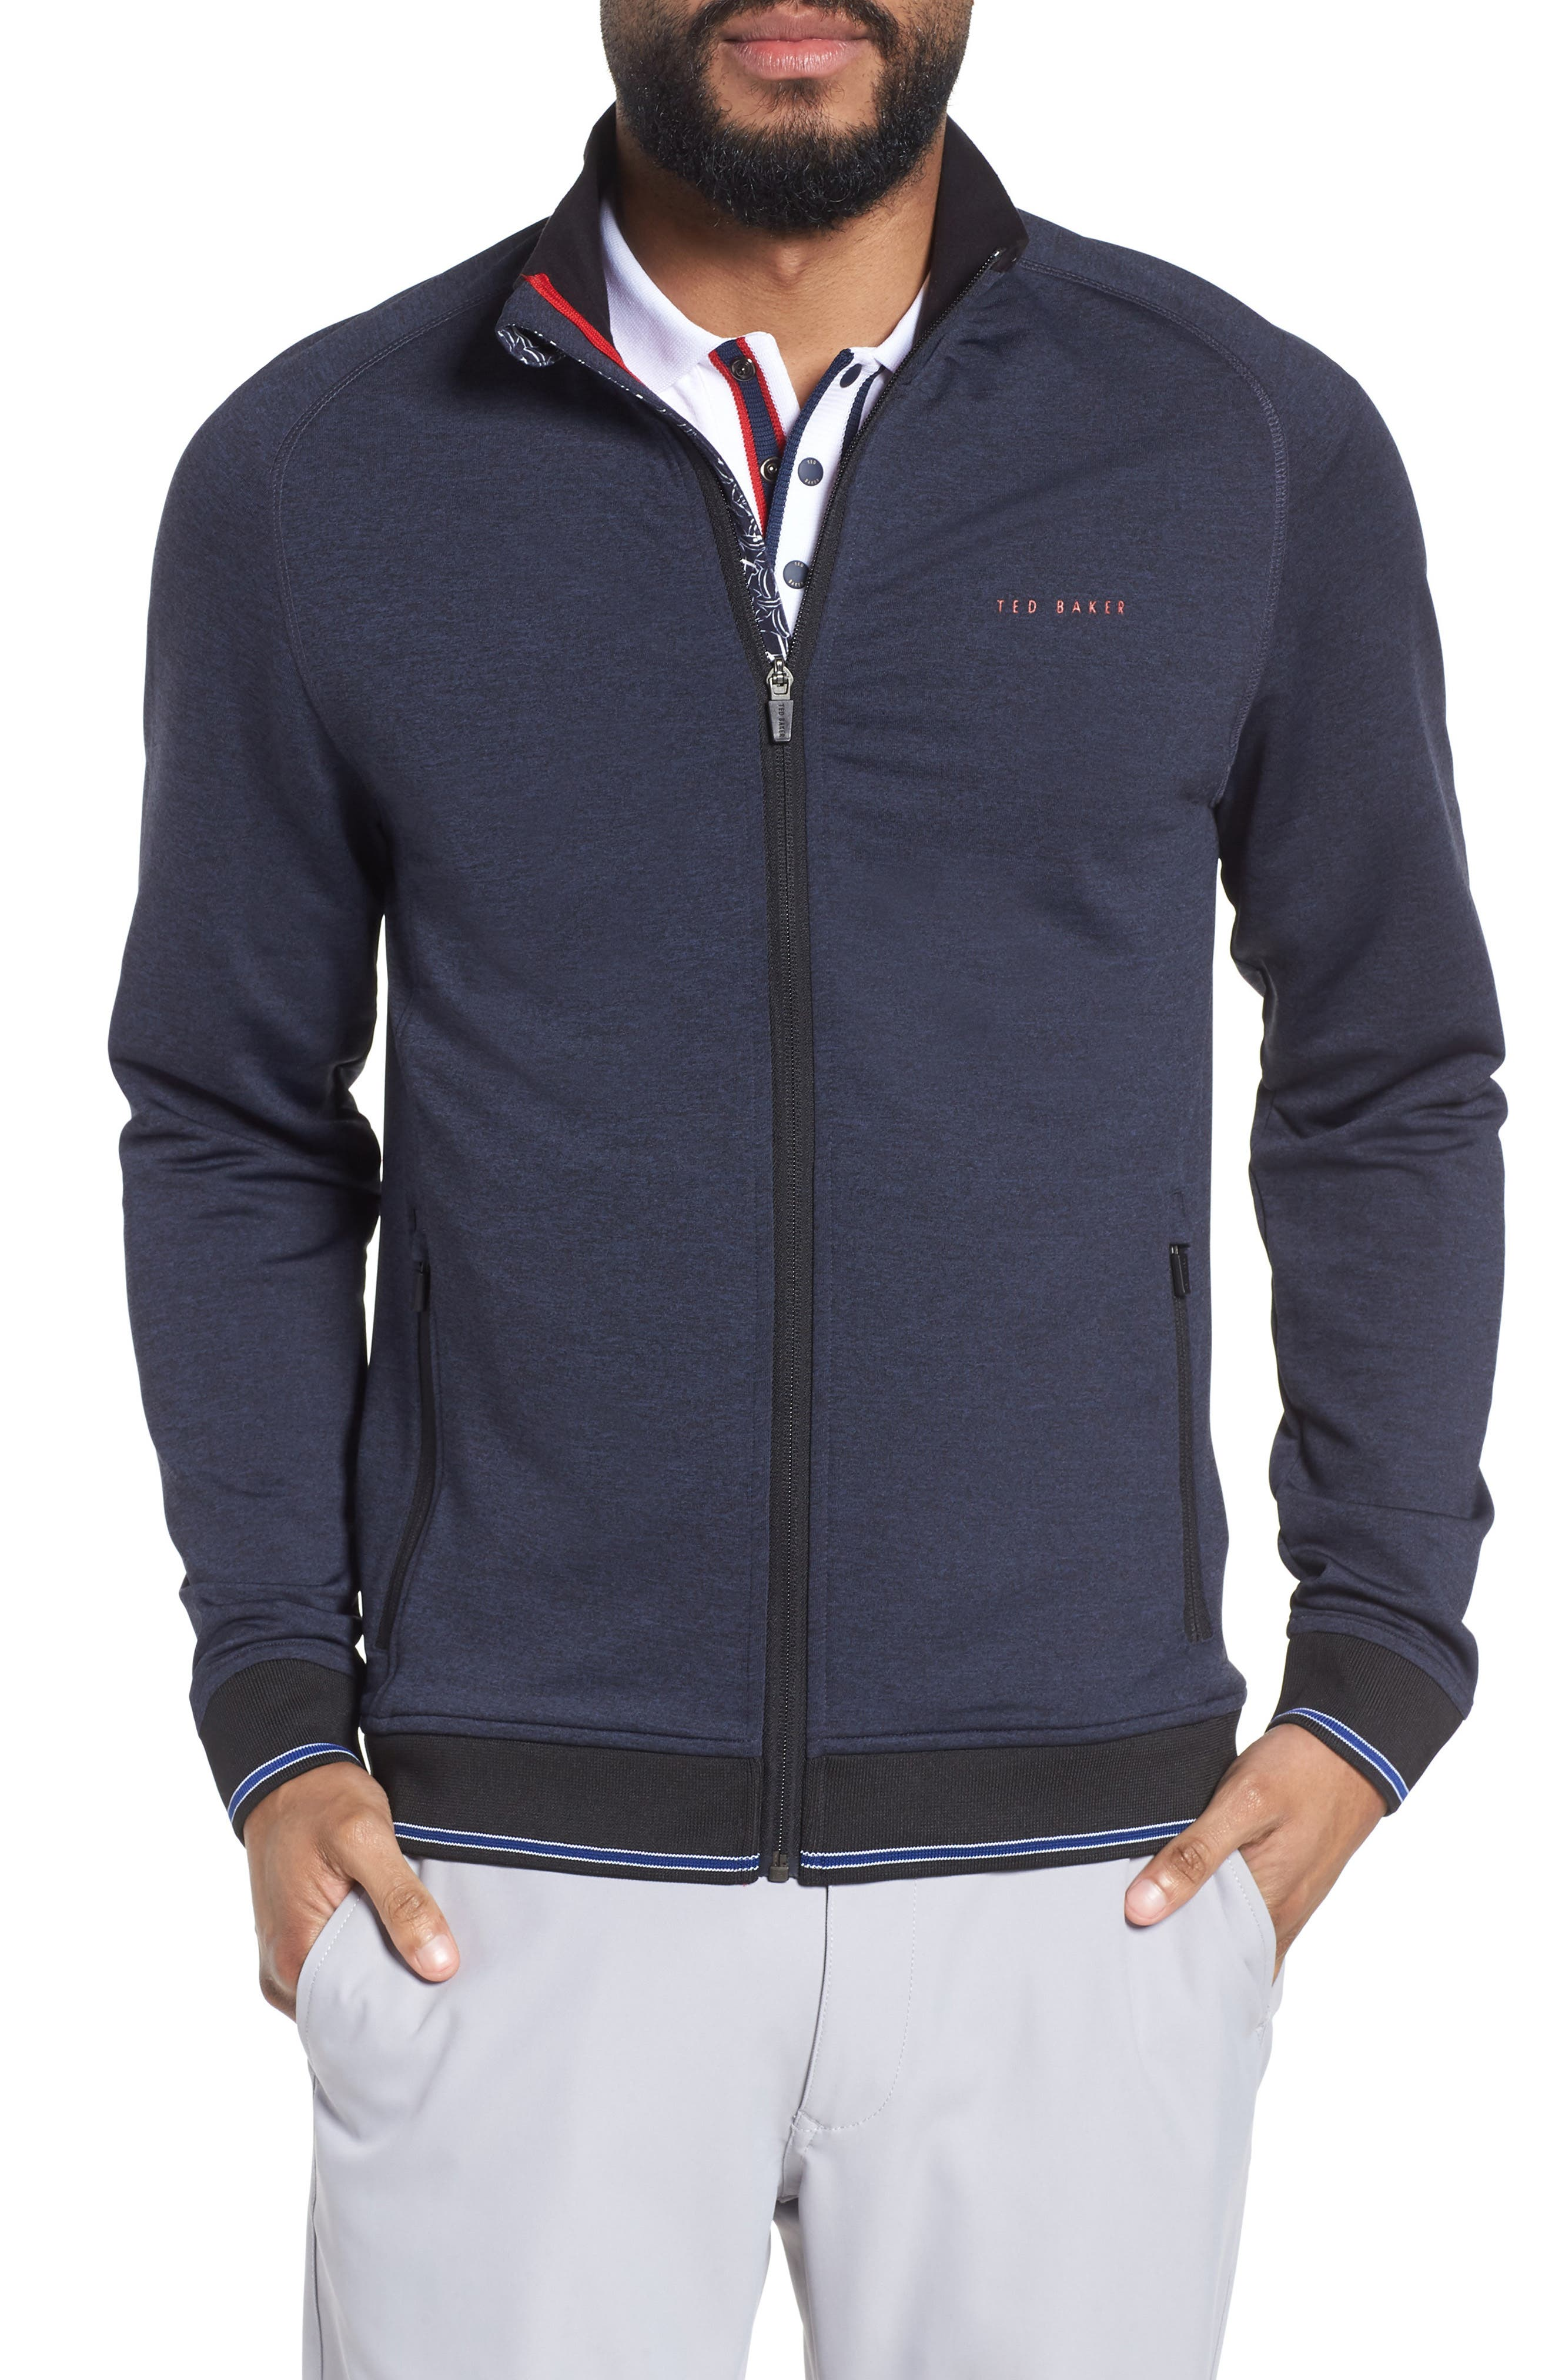 Main Image - Ted Baker London Parway Knit Golf Jacket